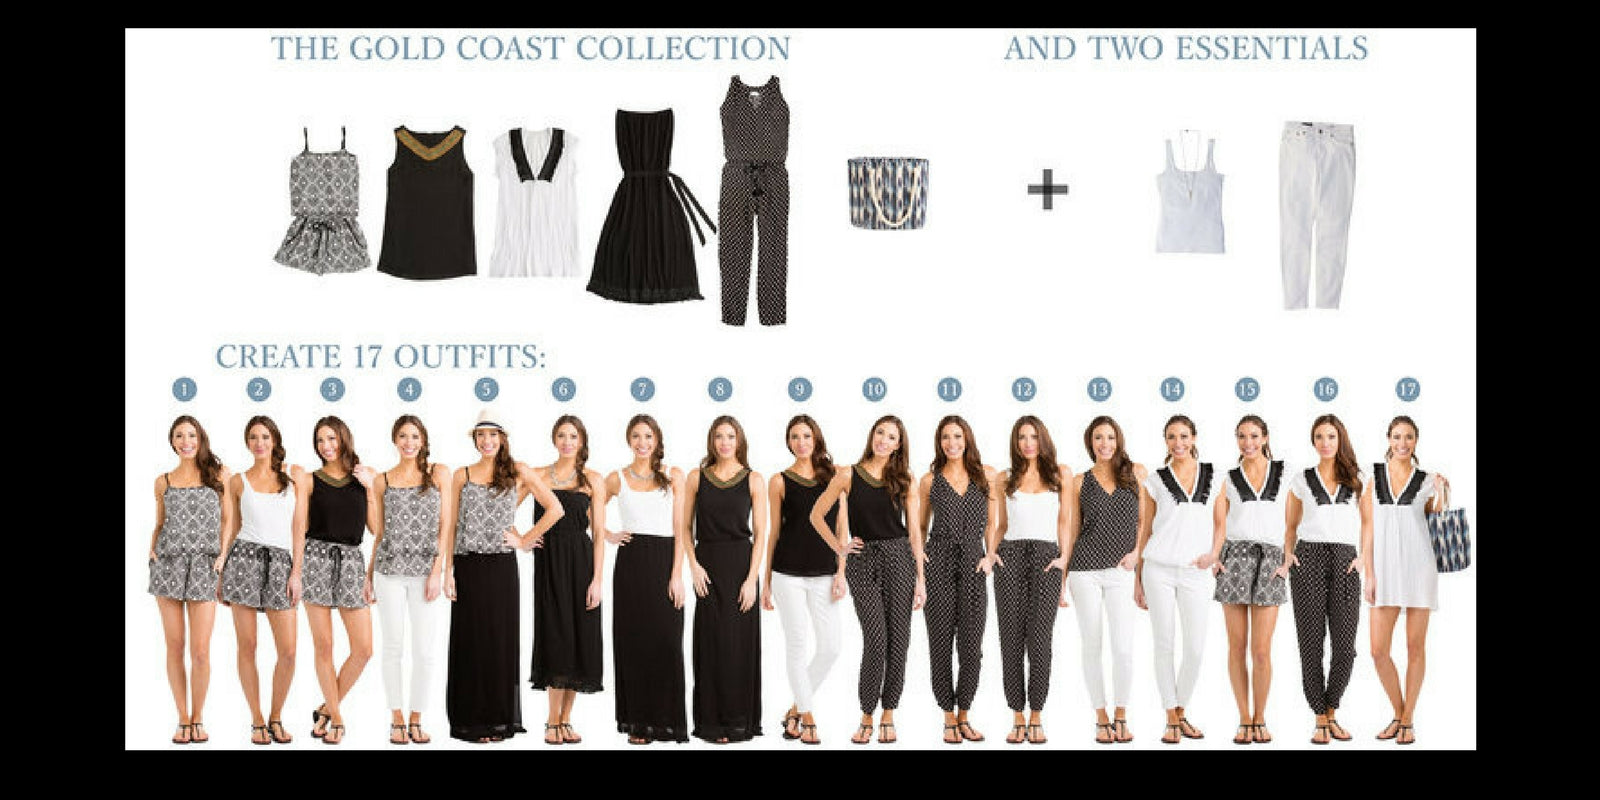 Vacay Gold Coast Collection: 5 items = 18 outfits